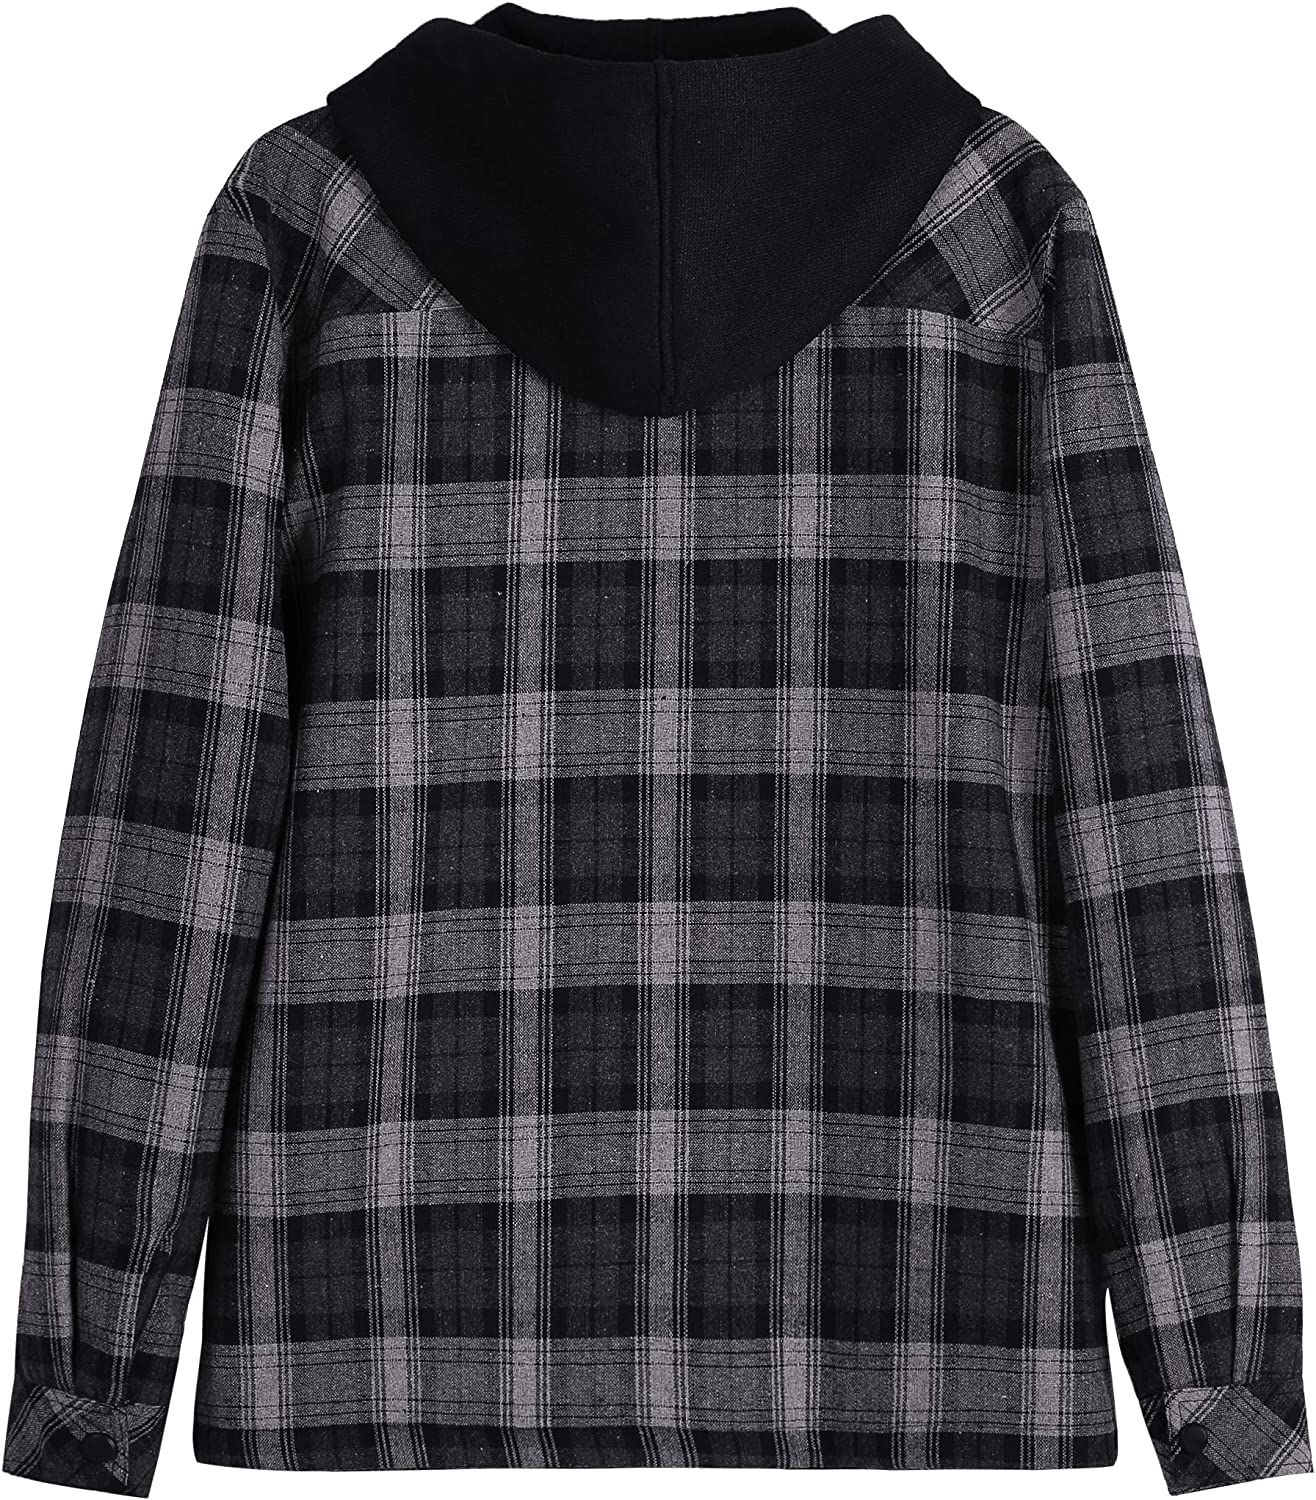 ZENTHACE Mens Sherpa Lined Full Zip Hooded Plaid Shirt Jacket